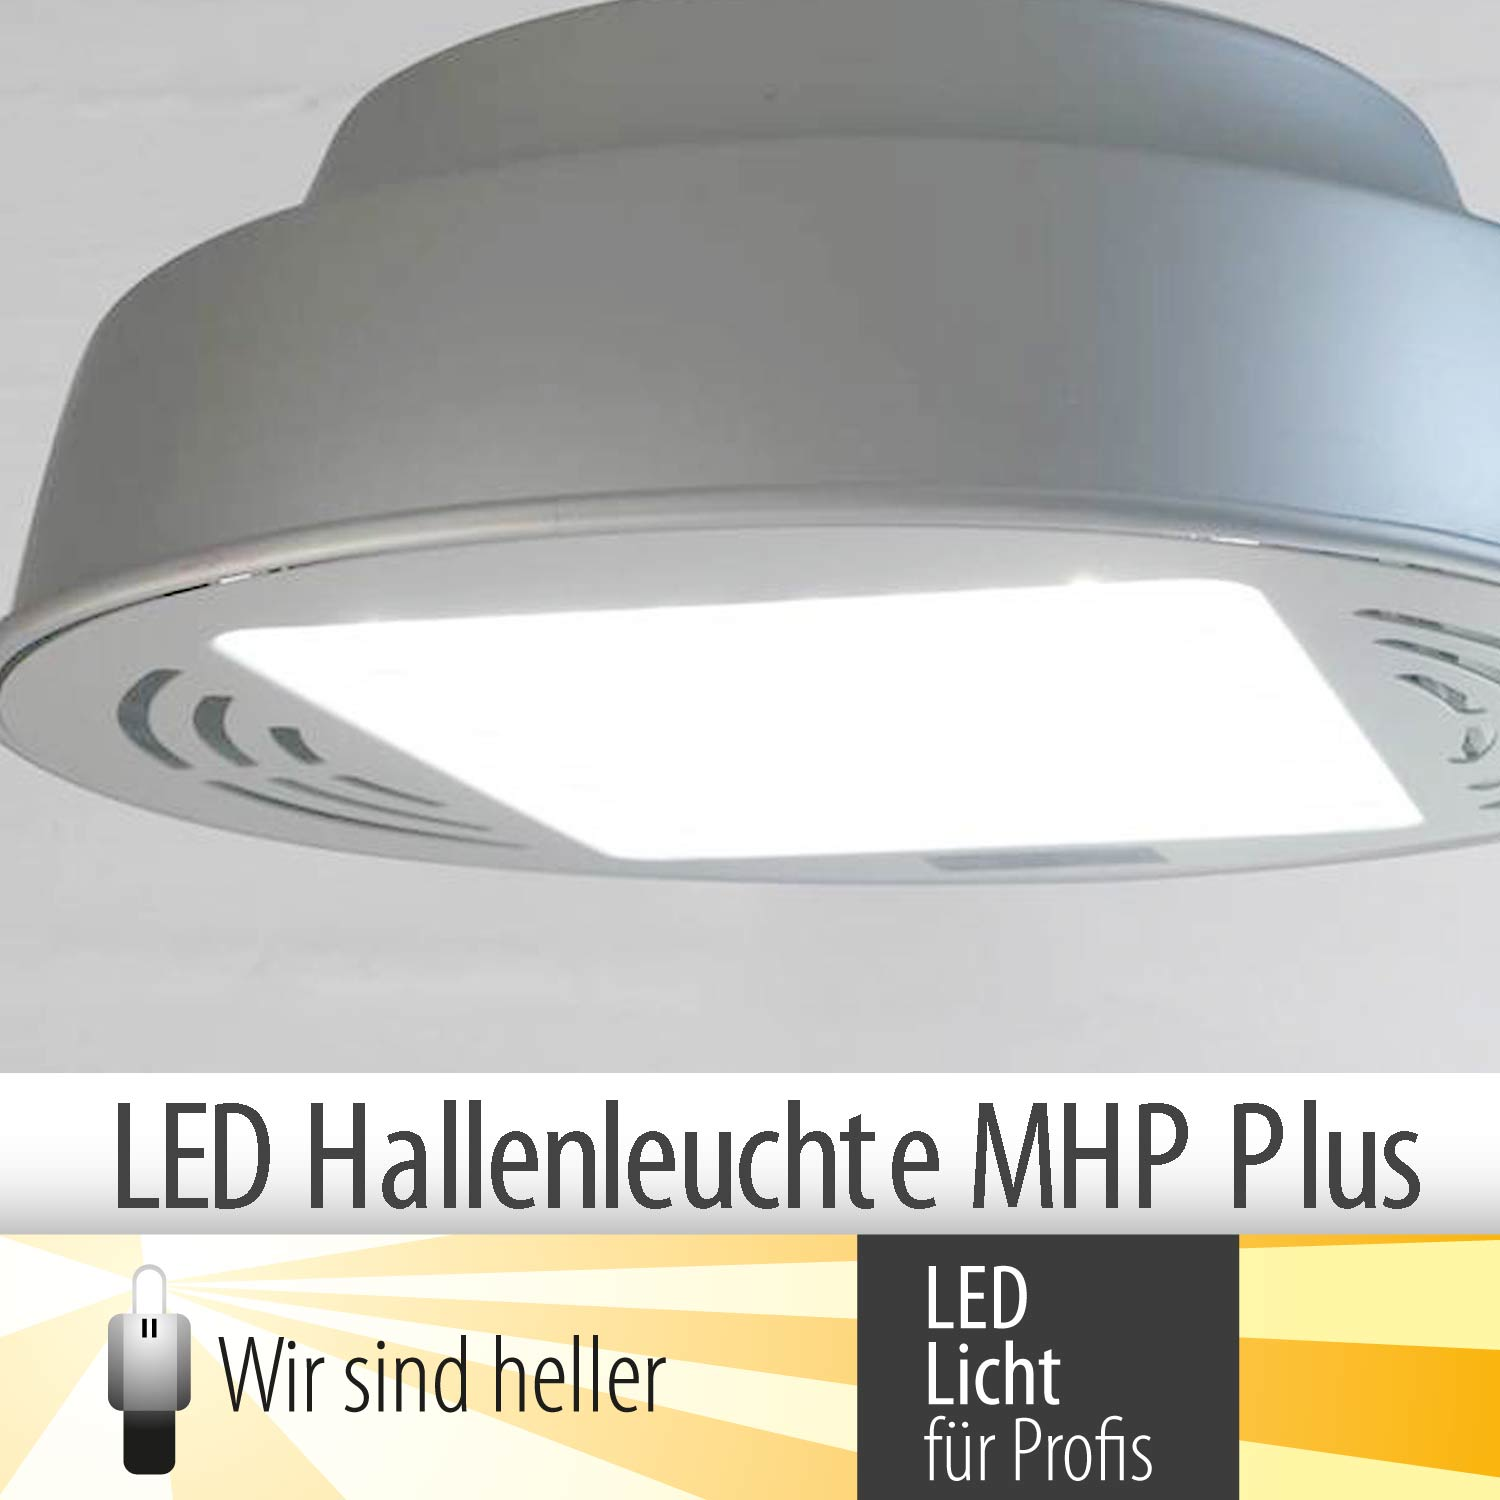 LED-Hallenstrahler MHP Plus